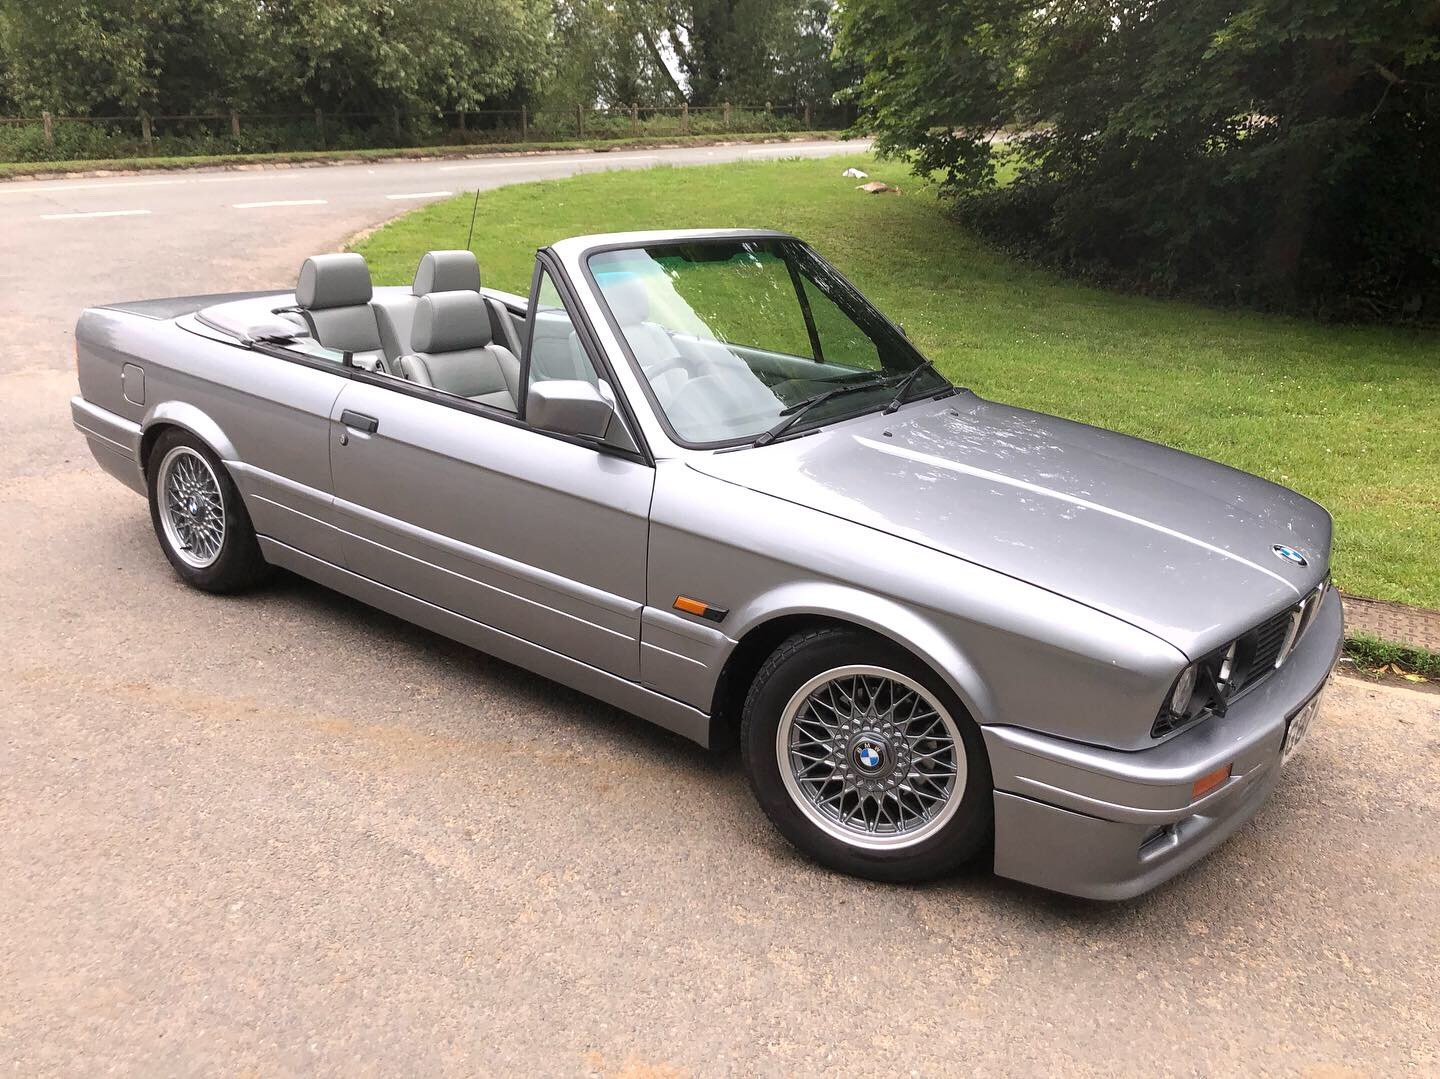 1989 BMW 3 SERIES E30 325i MOTORSPORT CONVERTIBLE 1 OF 250 For Sale (picture 1 of 6)